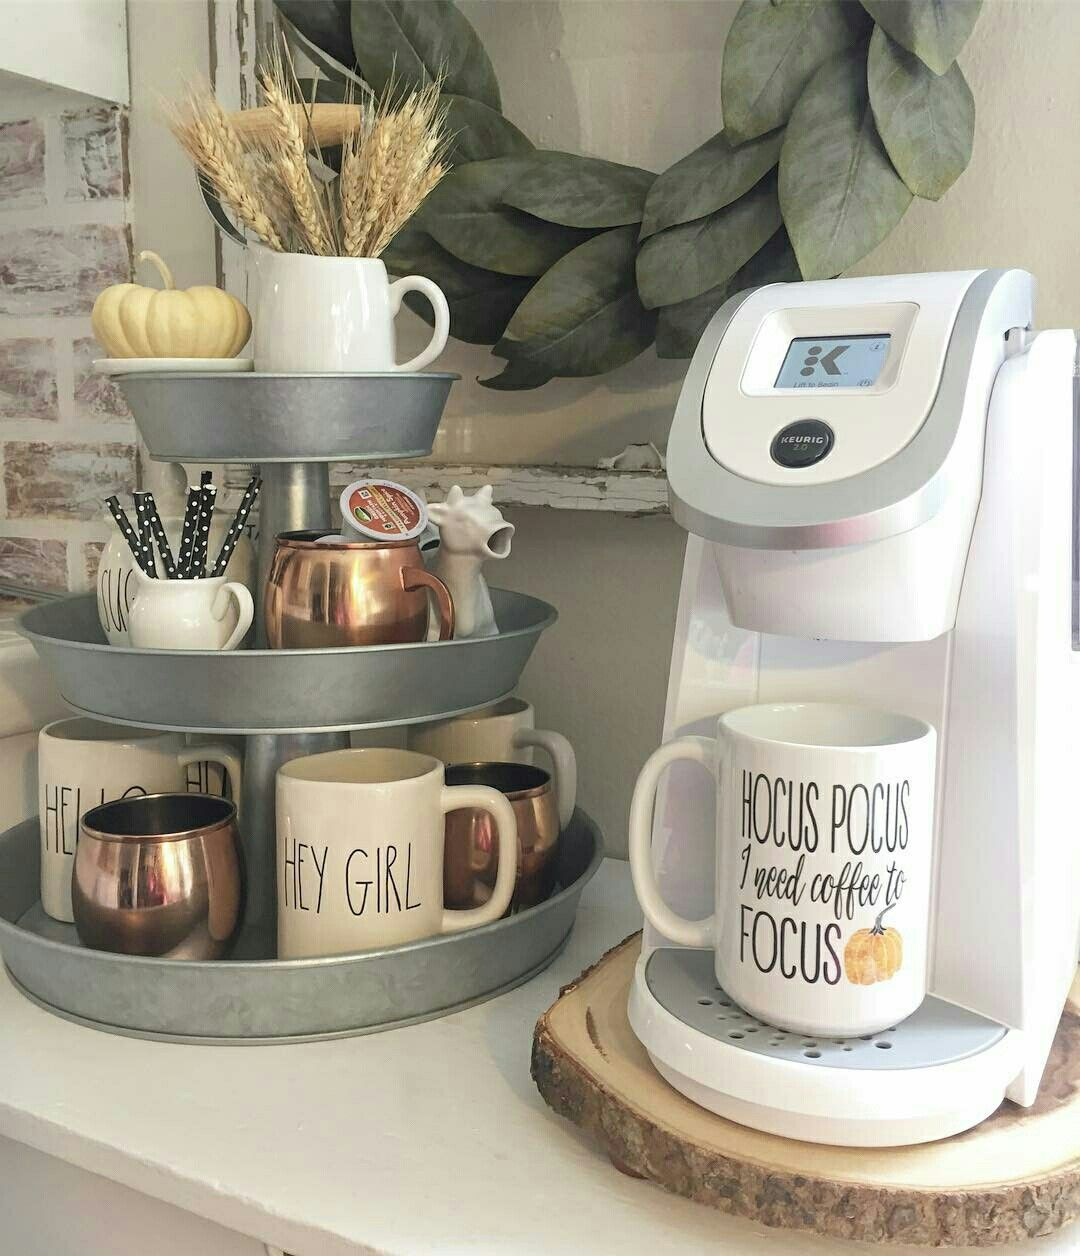 Kitchen Goals Heretomakelifeeasy: Image Result For Coffee Bar Tiered Tray